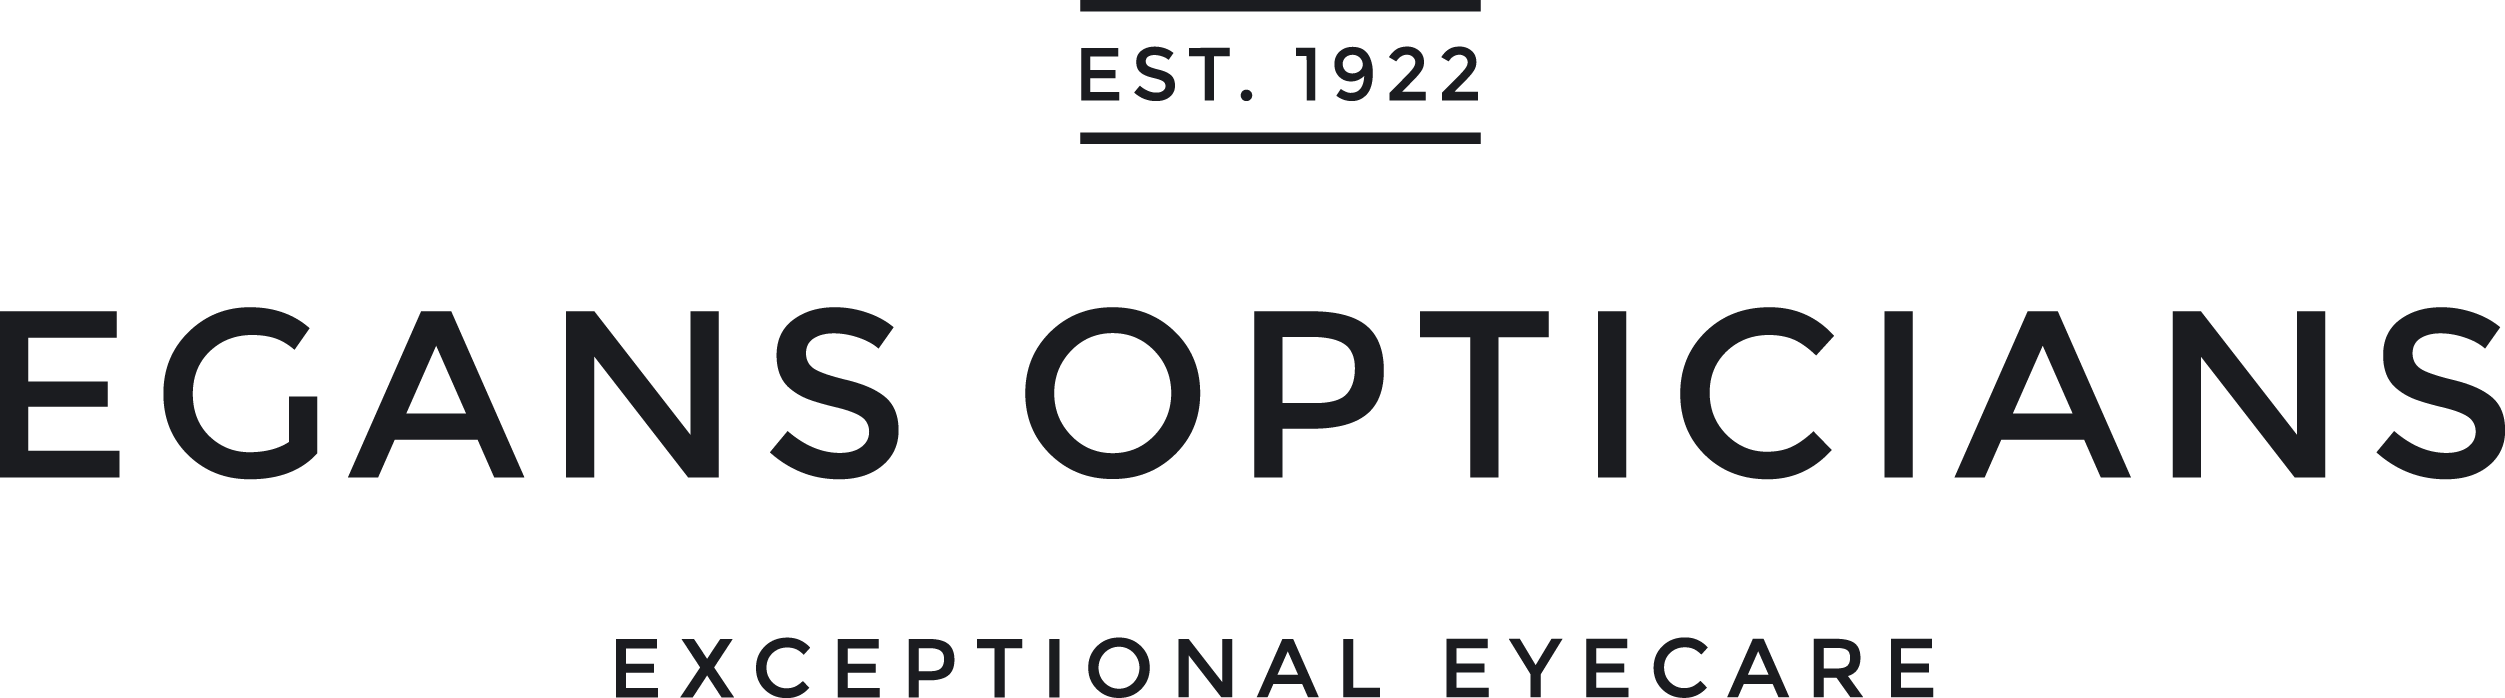 Egans Opticians